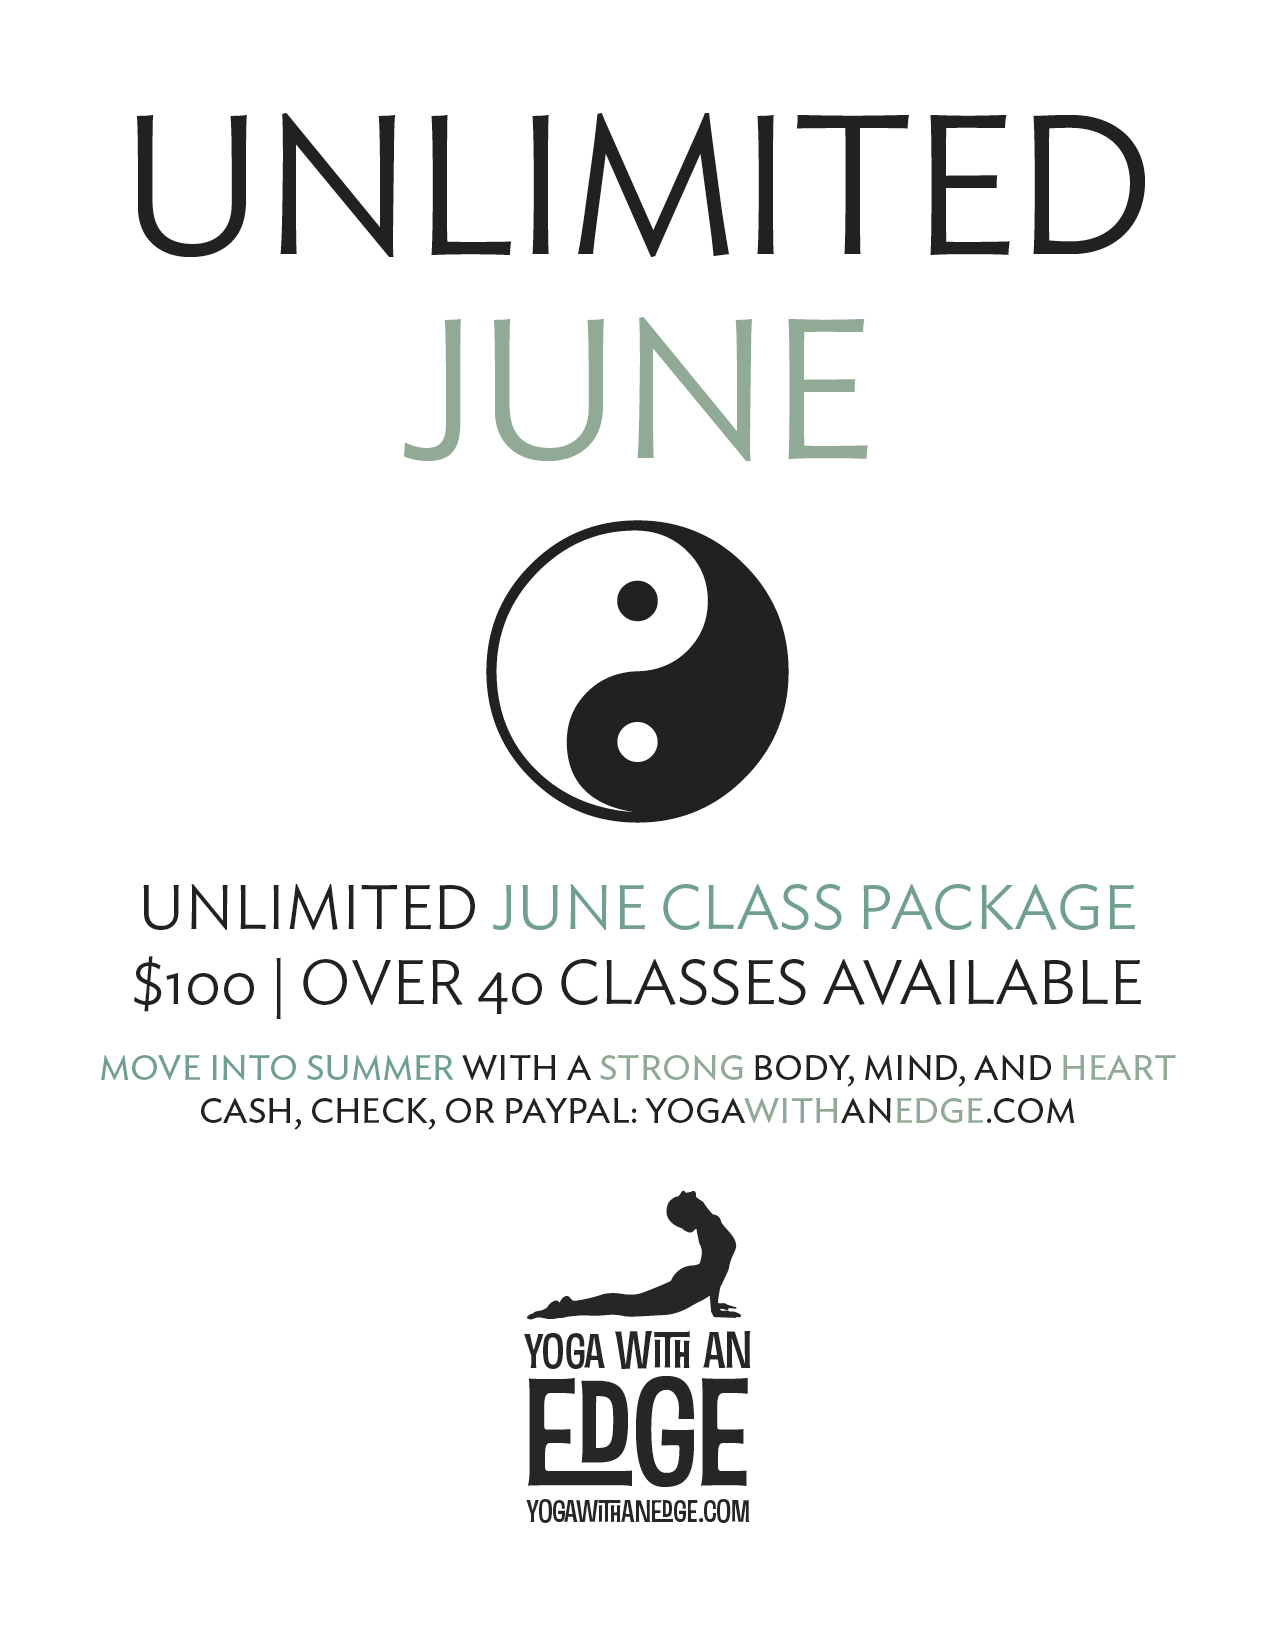 Yoga with an Edge - Unlimited June